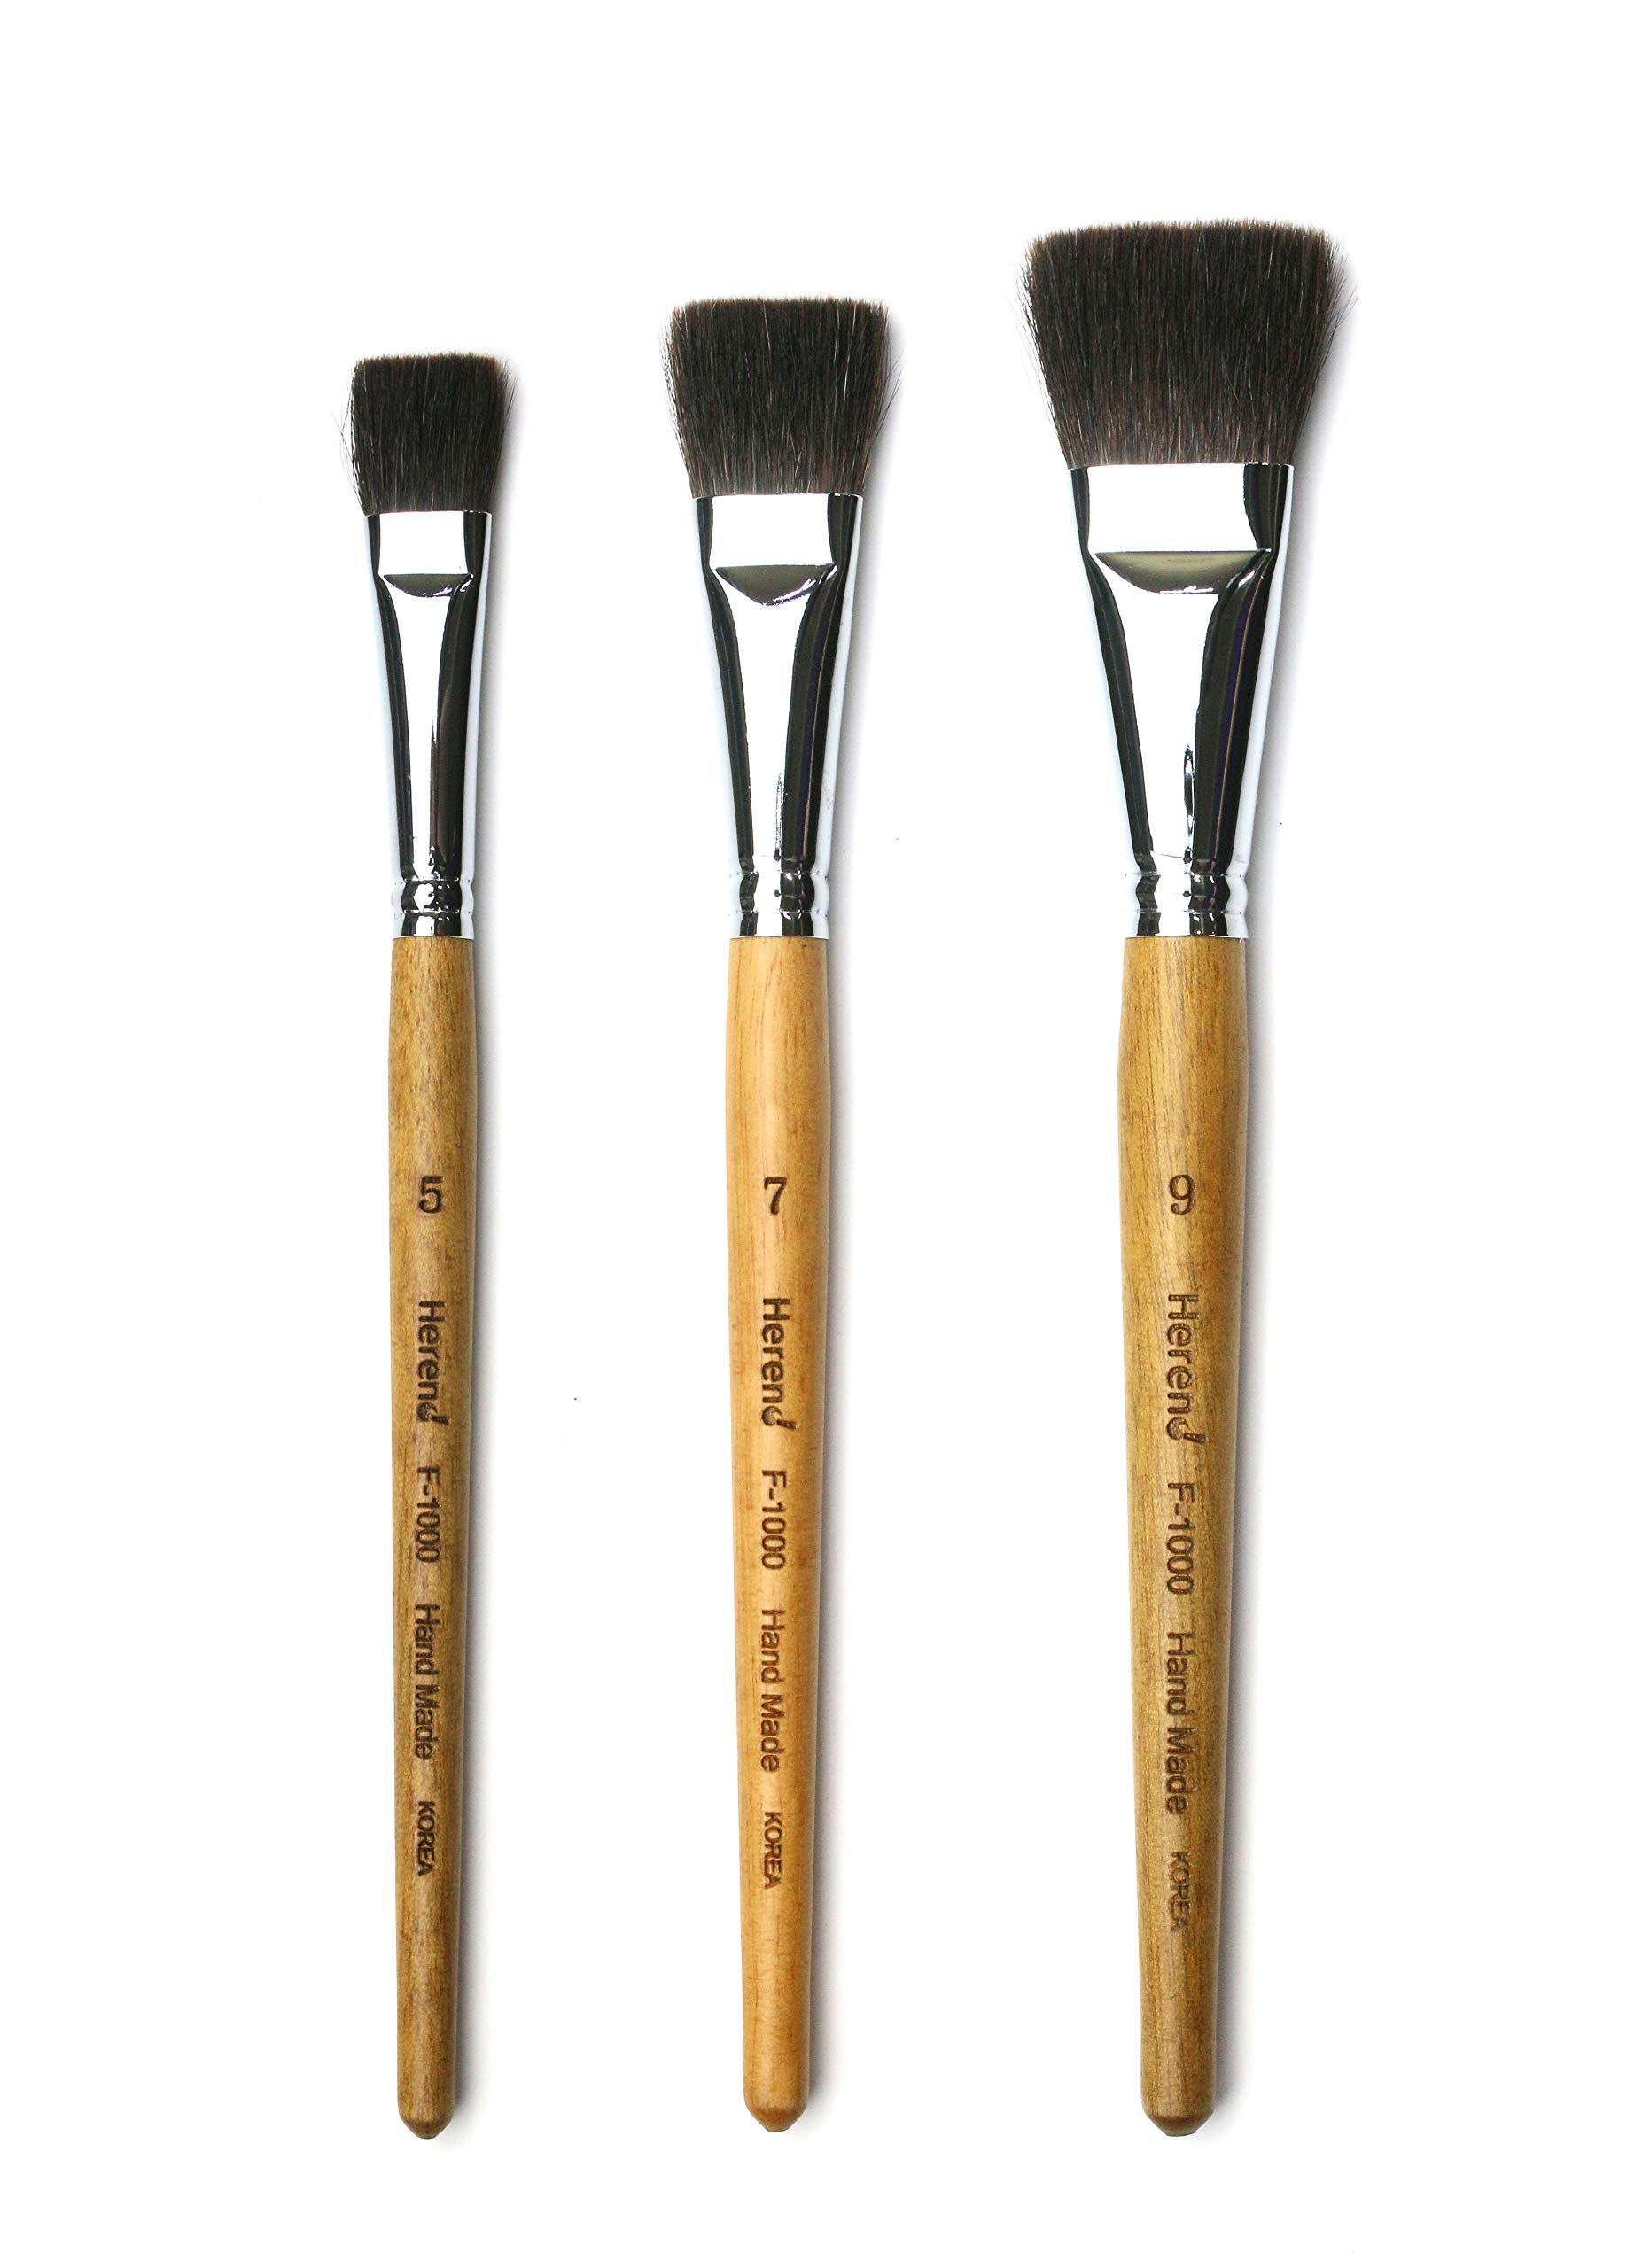 Herend Brush Series F-1000 (No.3 ~ No.13, 30mm ~ 60mm) for Watercolor with Squirrel Hair/Hake Flat Paintbrush (Set (5,7,9)) by Herend Brush